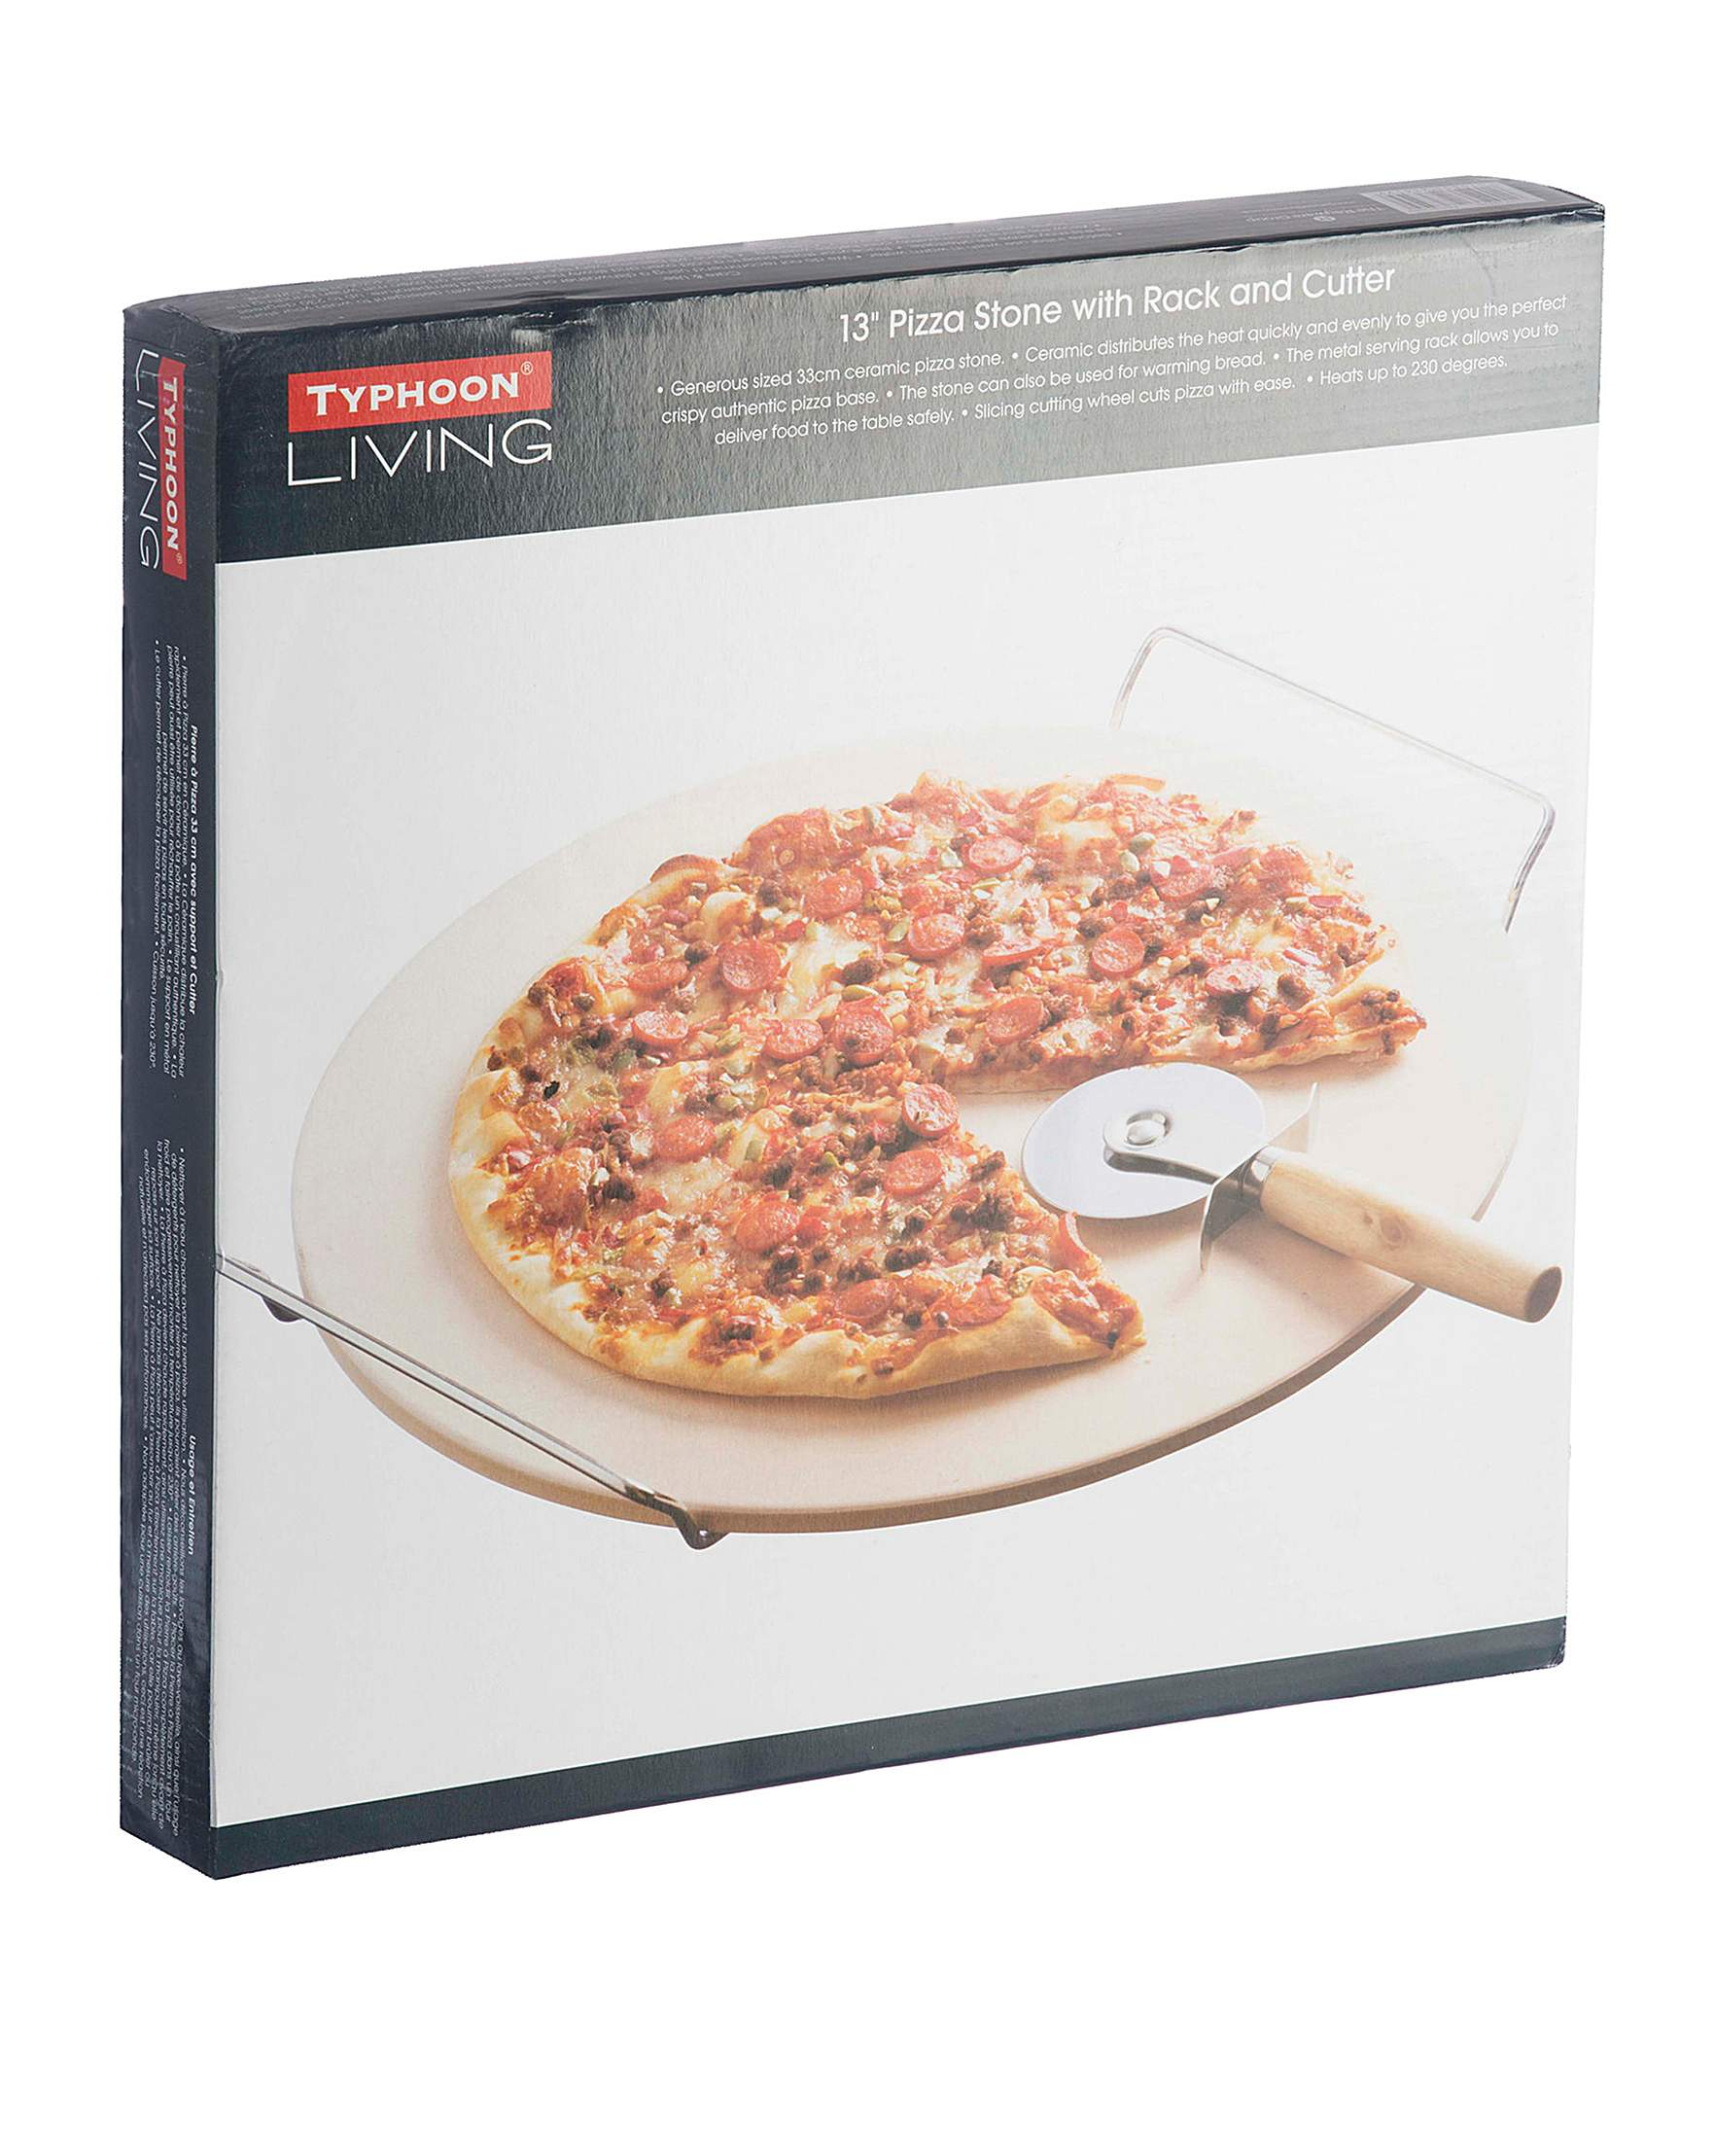 Pierre A Pizza Typhoon Living 3 Piece Pizza Stone Set